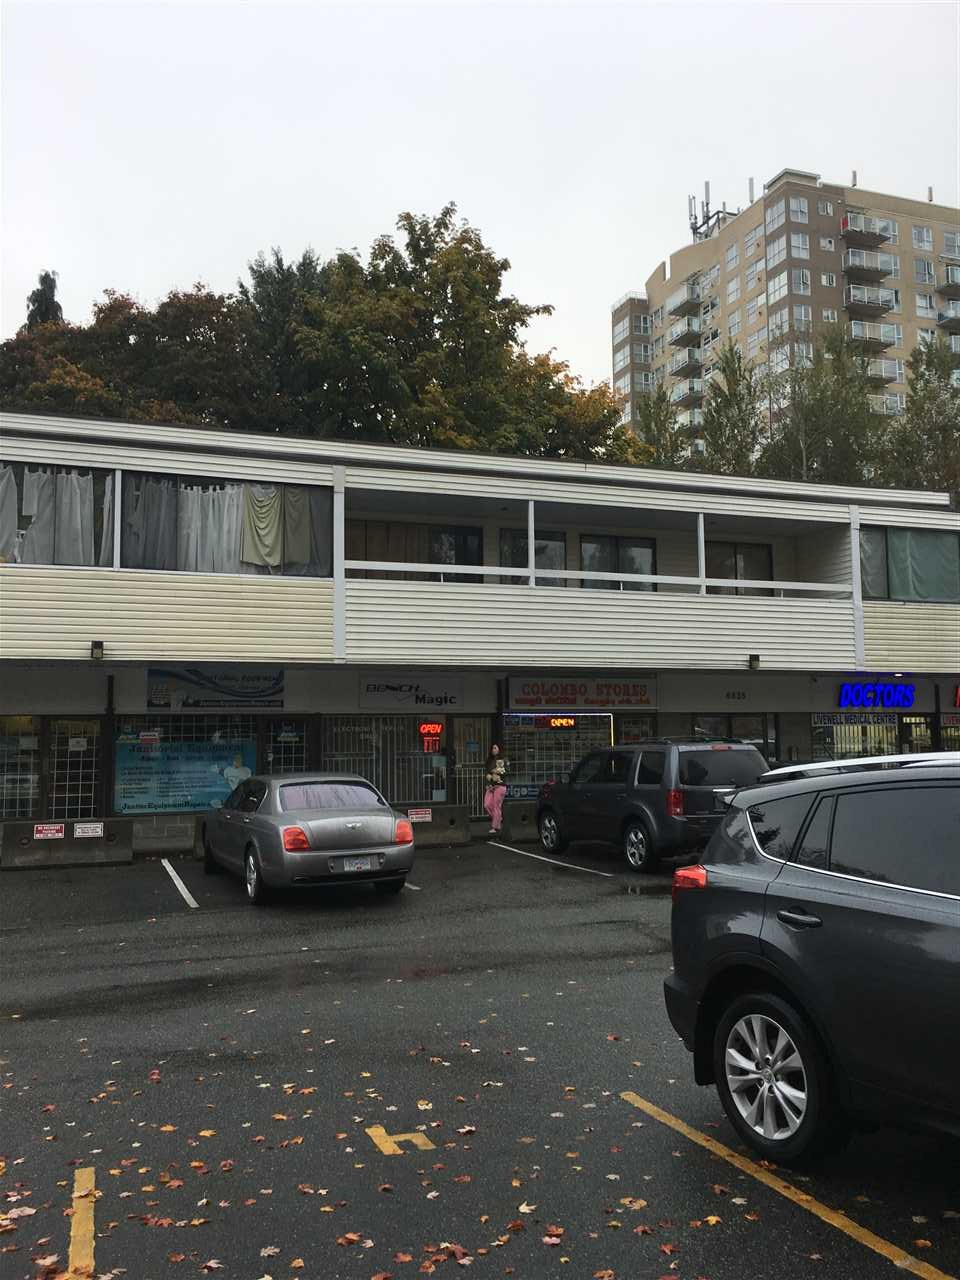 Attention Investors A one bedroom apartment with large patio and balcony, in very convenient location  bal close to transportation shopping, elementary and secondary school. Showing By appointment only. Need Some TLC.